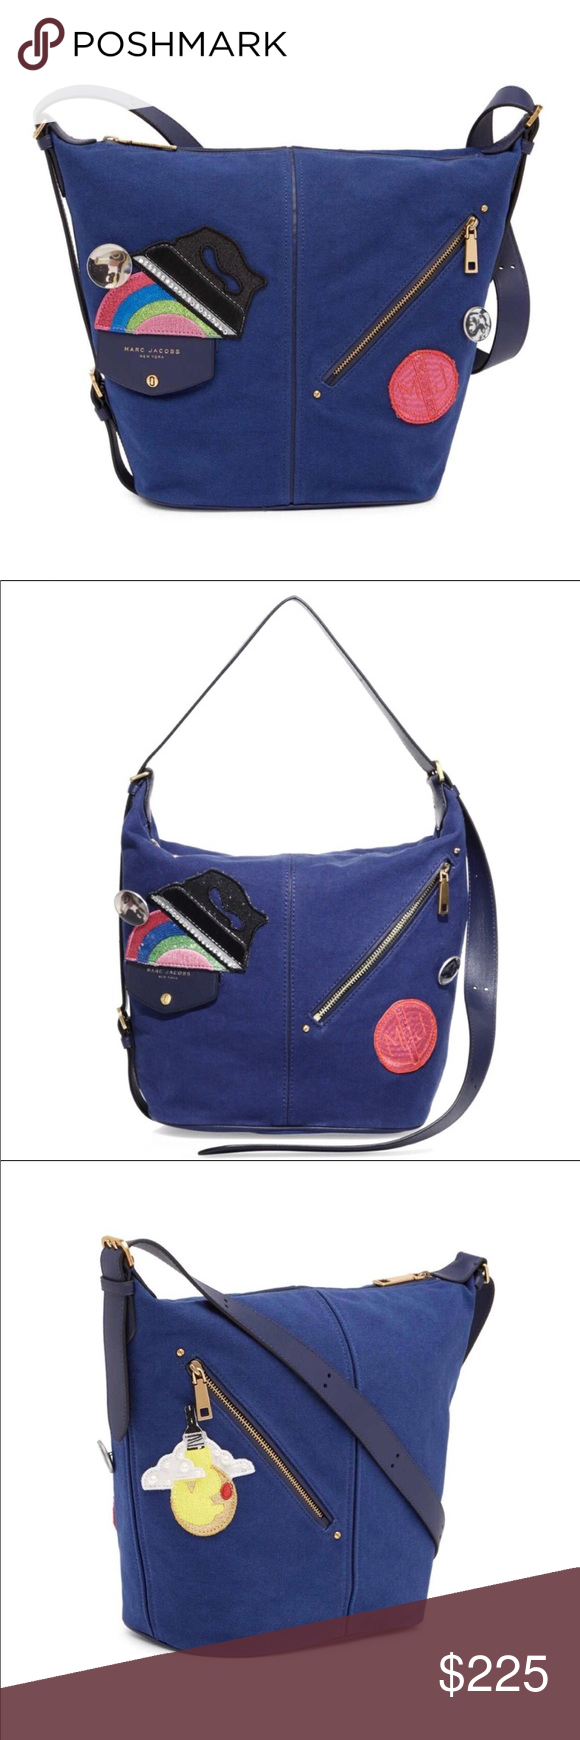 "d7e01edcdcb8 Marc Jacobs Convertible Tote ""The Canvas Sling"" Marc Jacobs Convertible  Cross Body Sling Backpack"